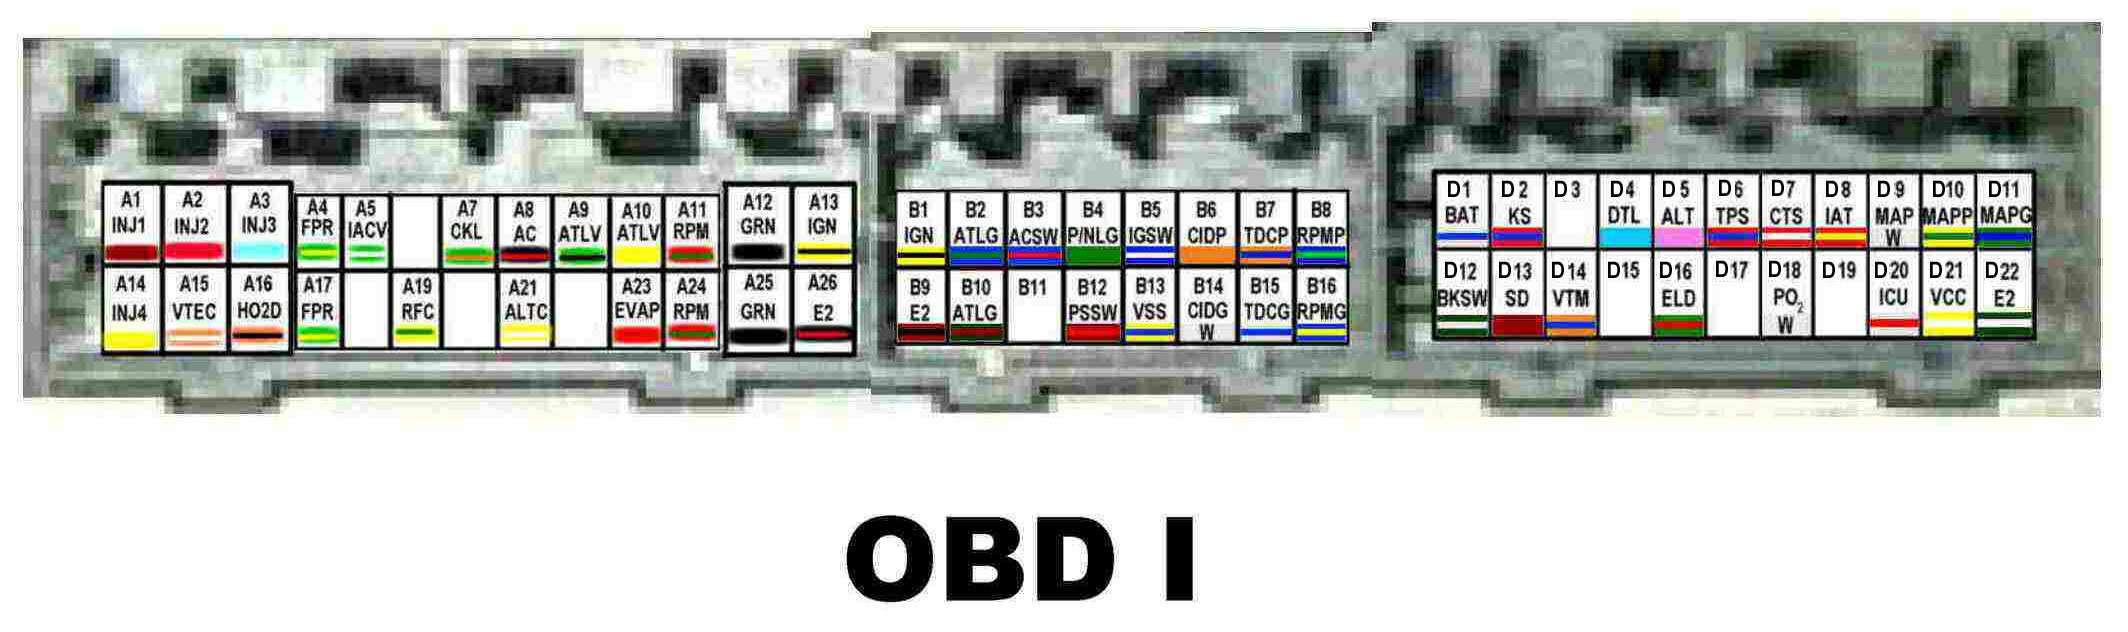 Wiring Diagram Colors Pinouts For 9698 Obd2a Vehicles